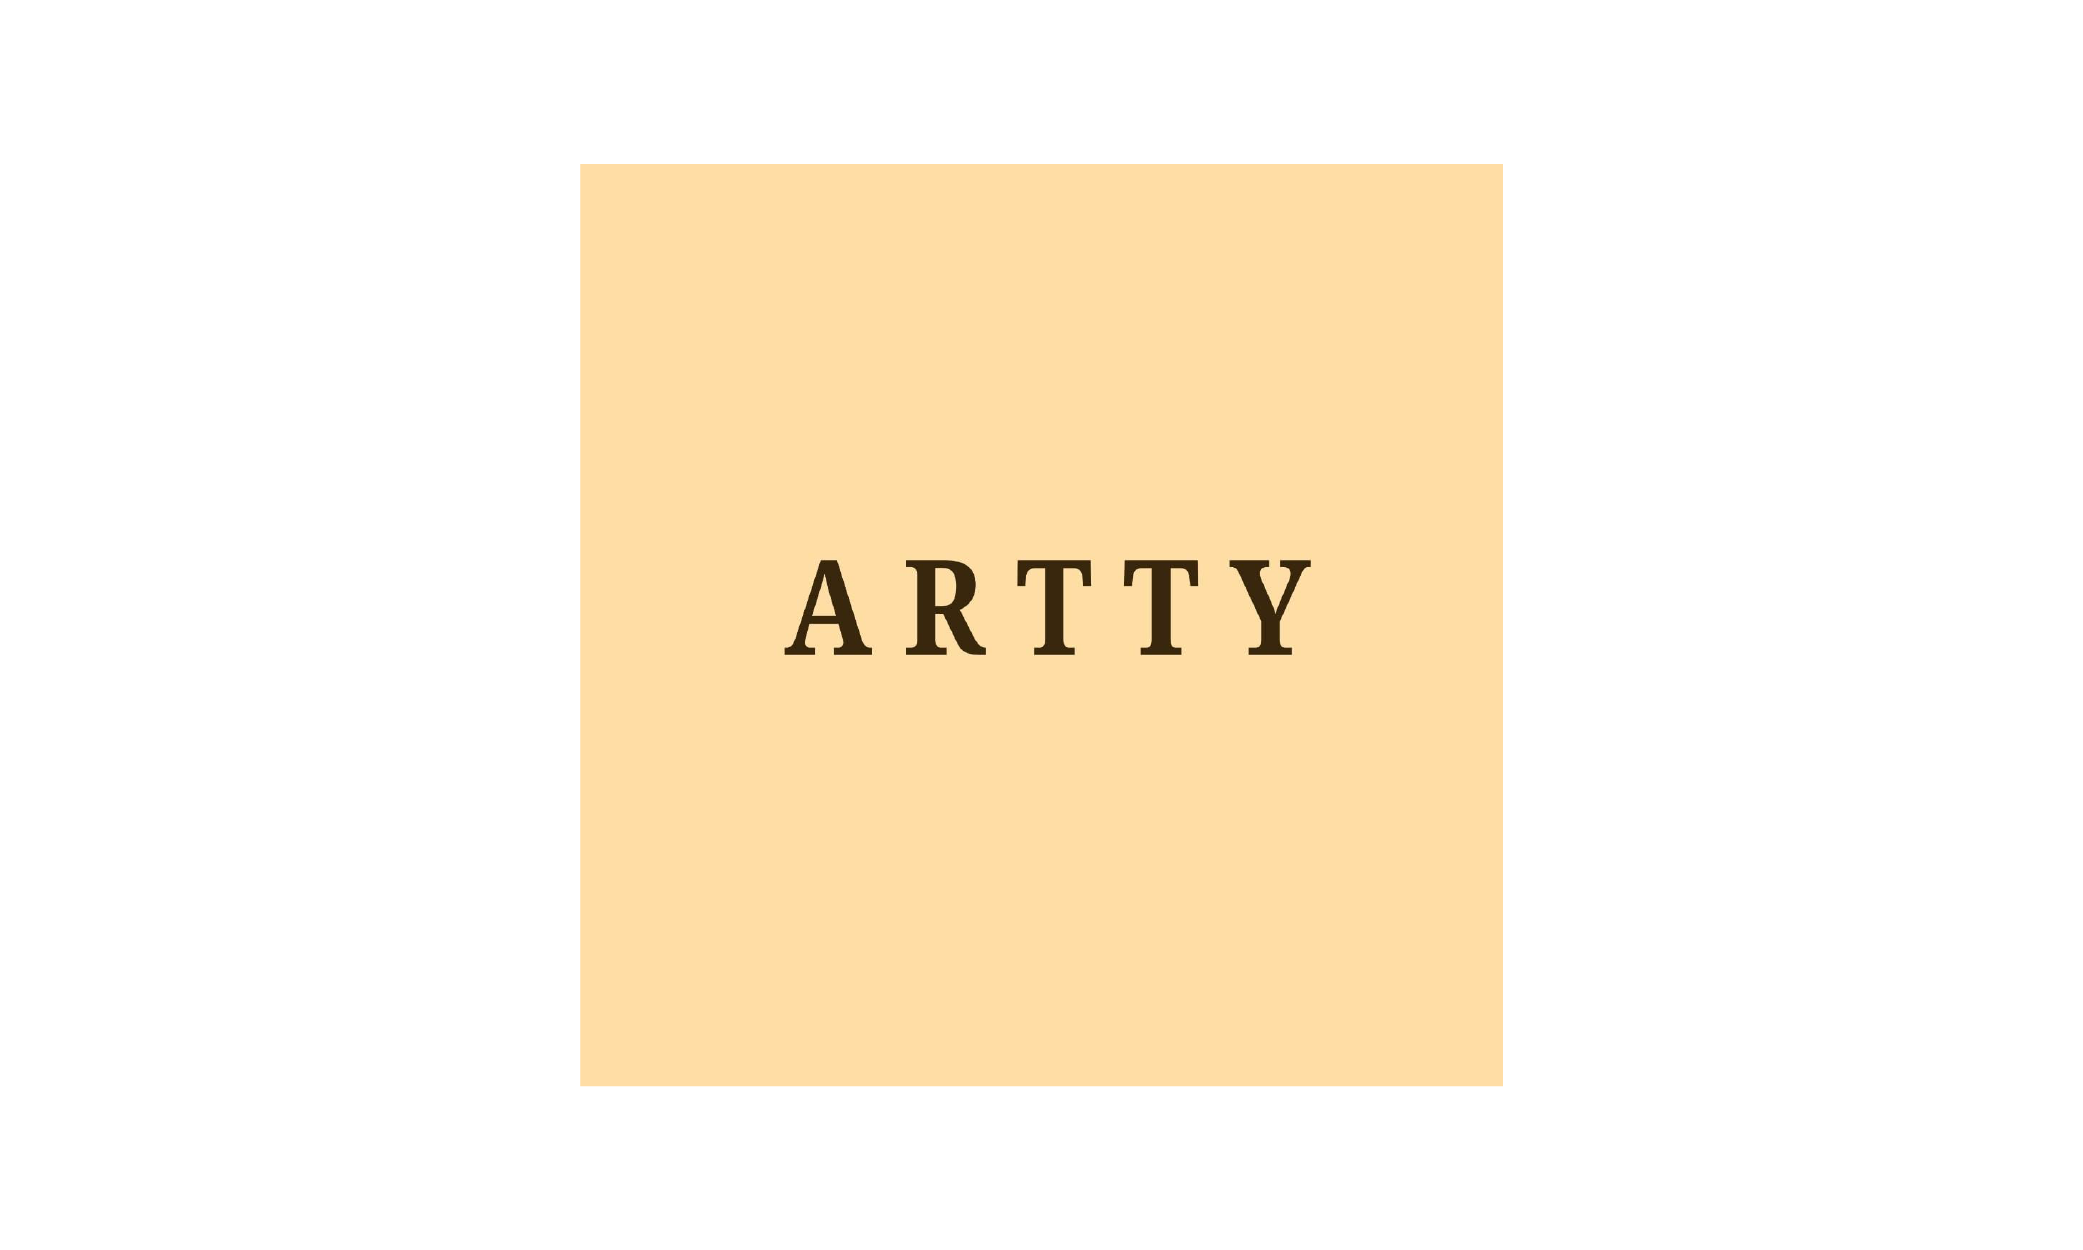 Artty Groups (Artty Brand)